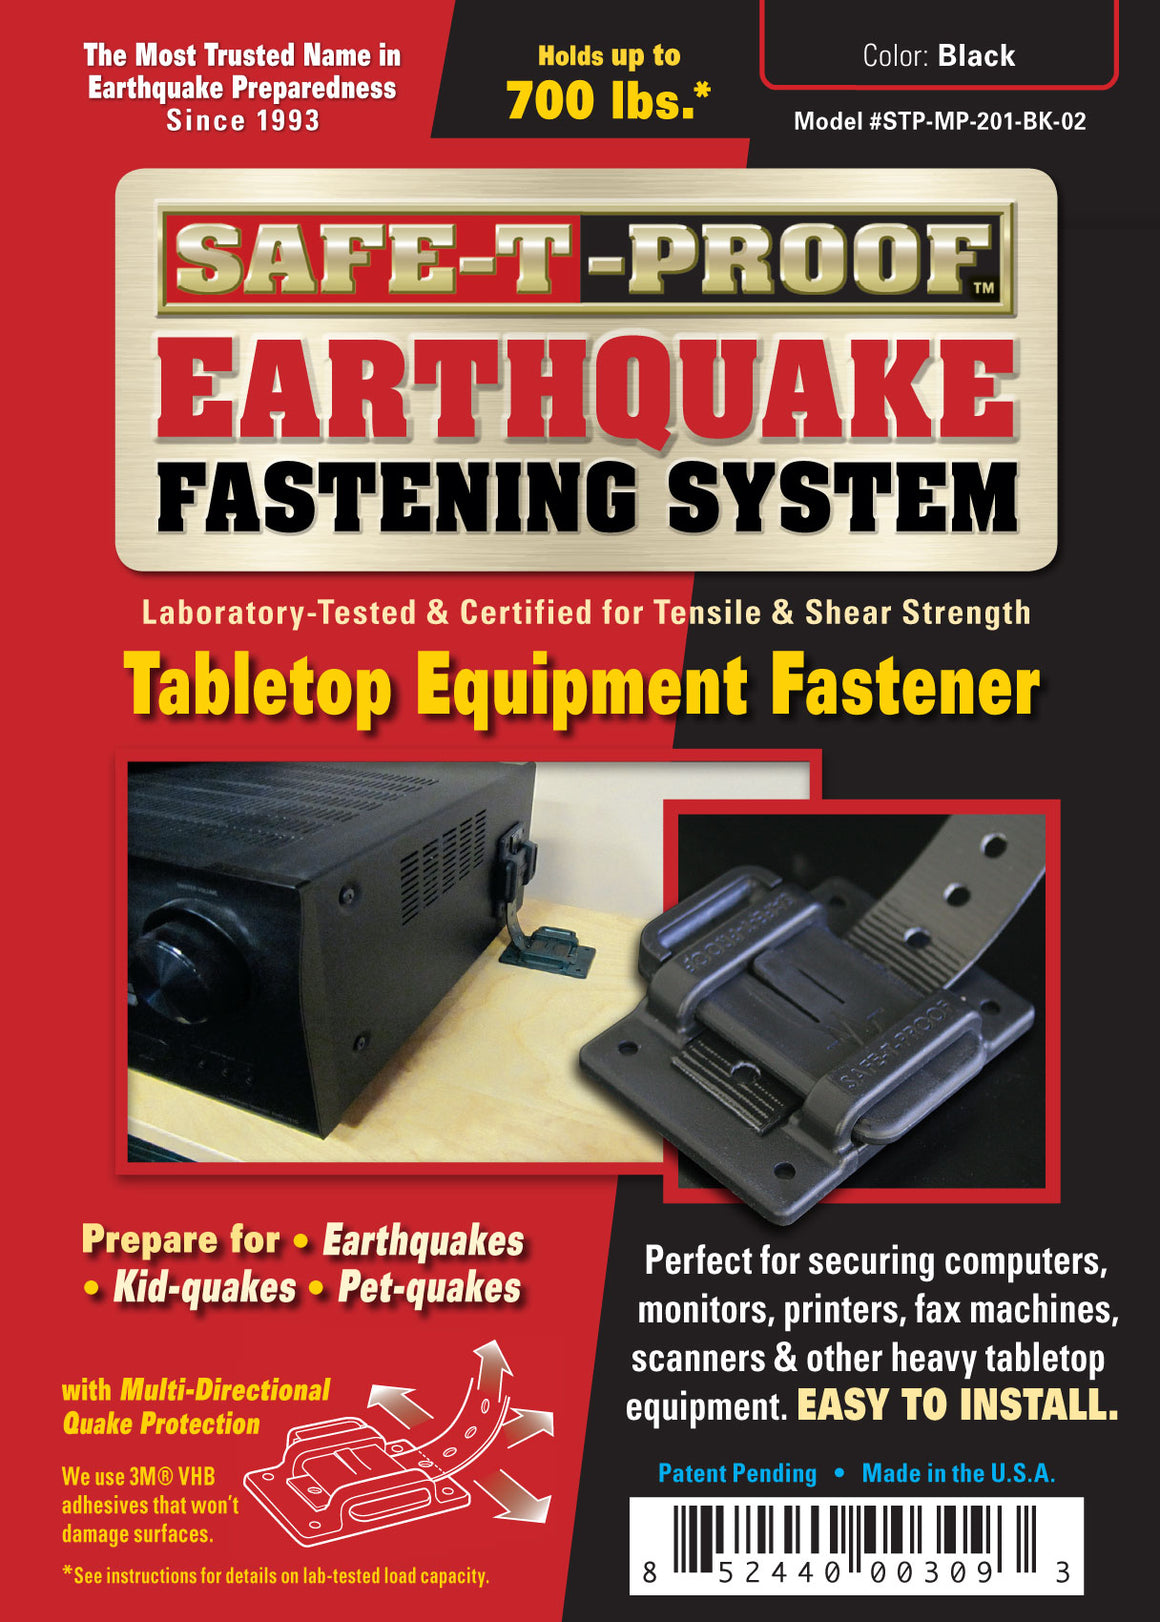 SAFE-T-PROOF Tabletop Equipment | Fastening System